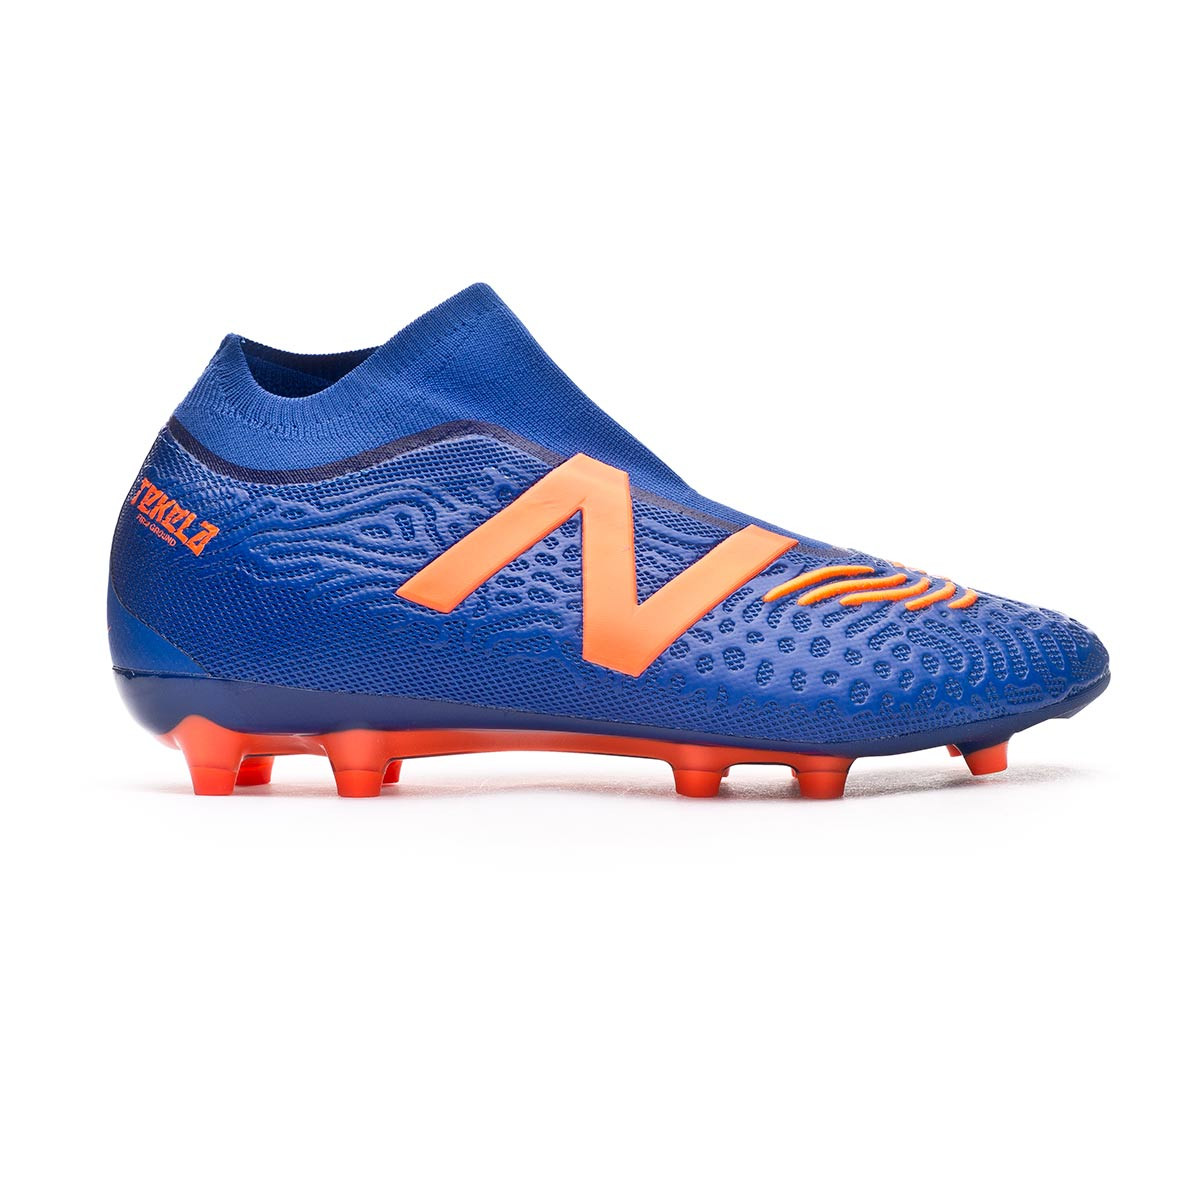 new balance calcio tekela